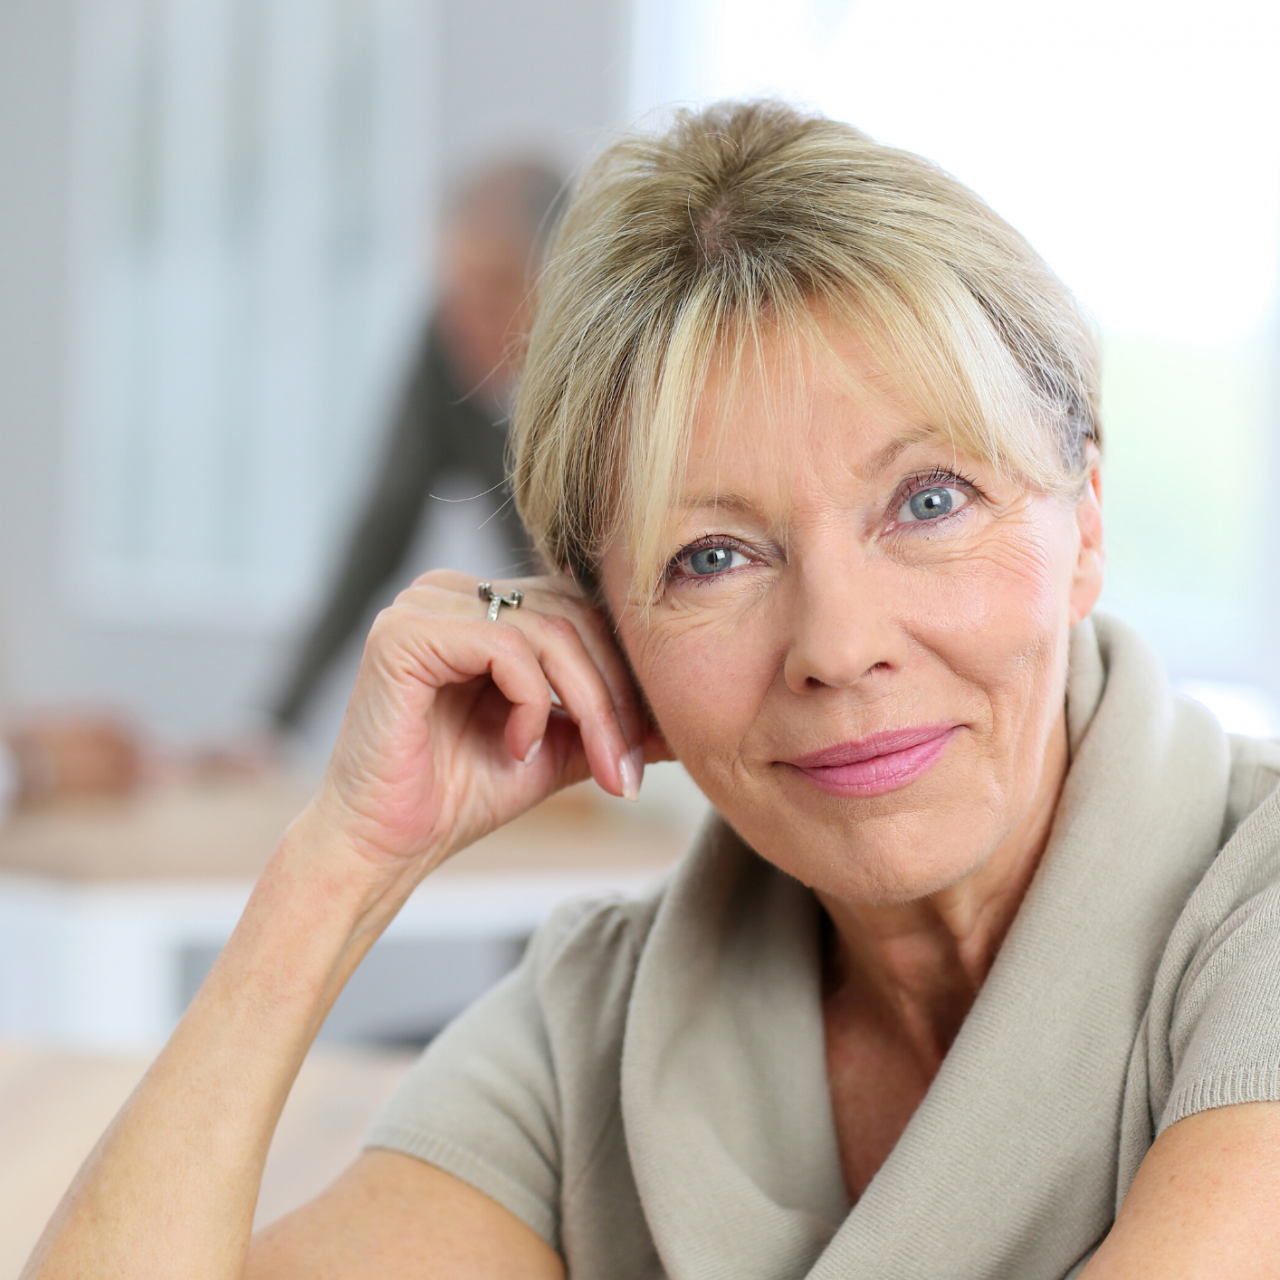 HRT and menopause